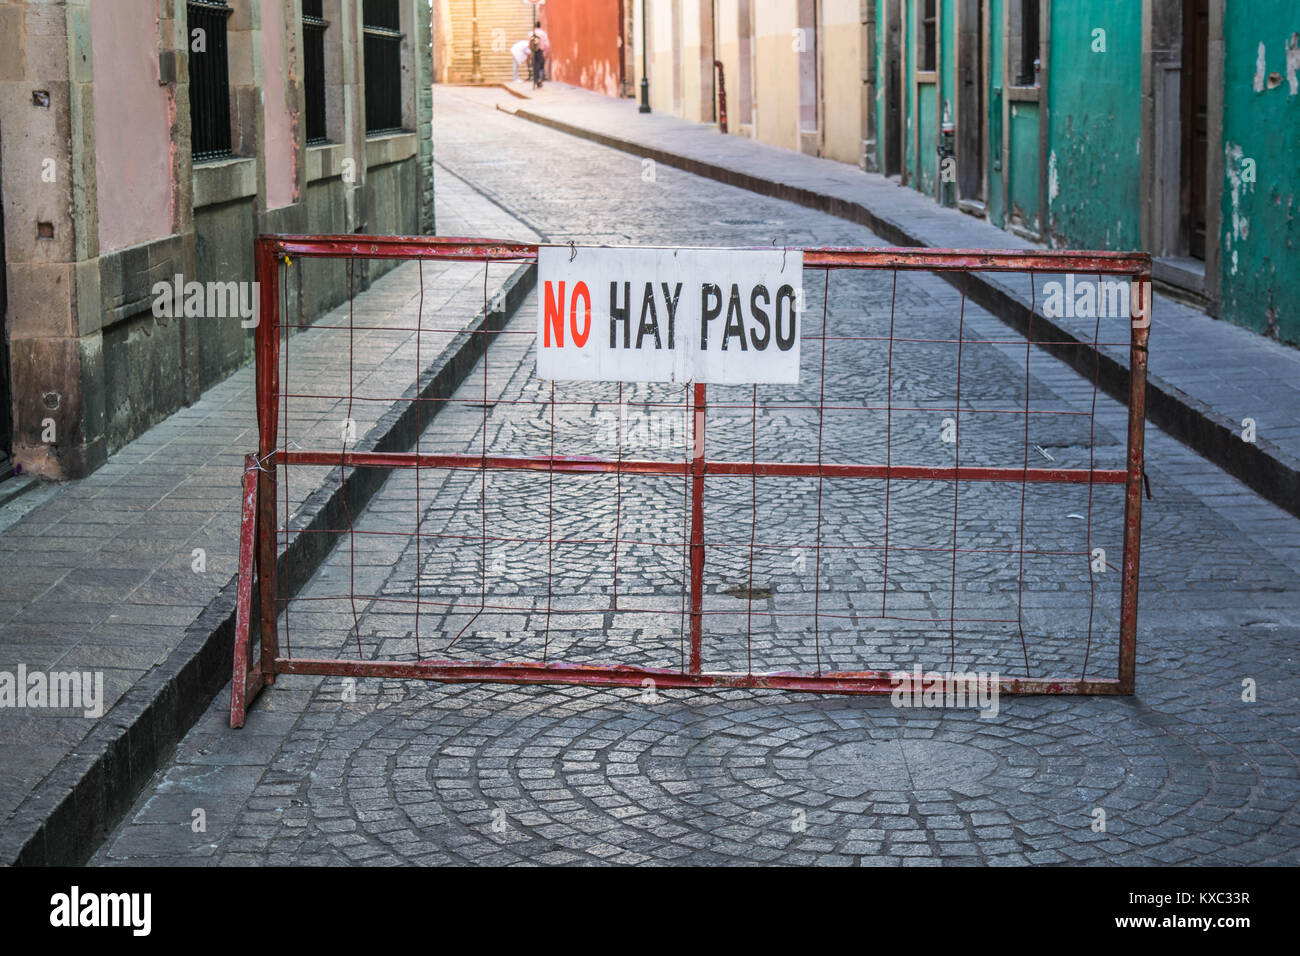 A red iron gate with a no passing sign, blocking the entrance to a cobblestone street with the bottom portion of - Stock Image